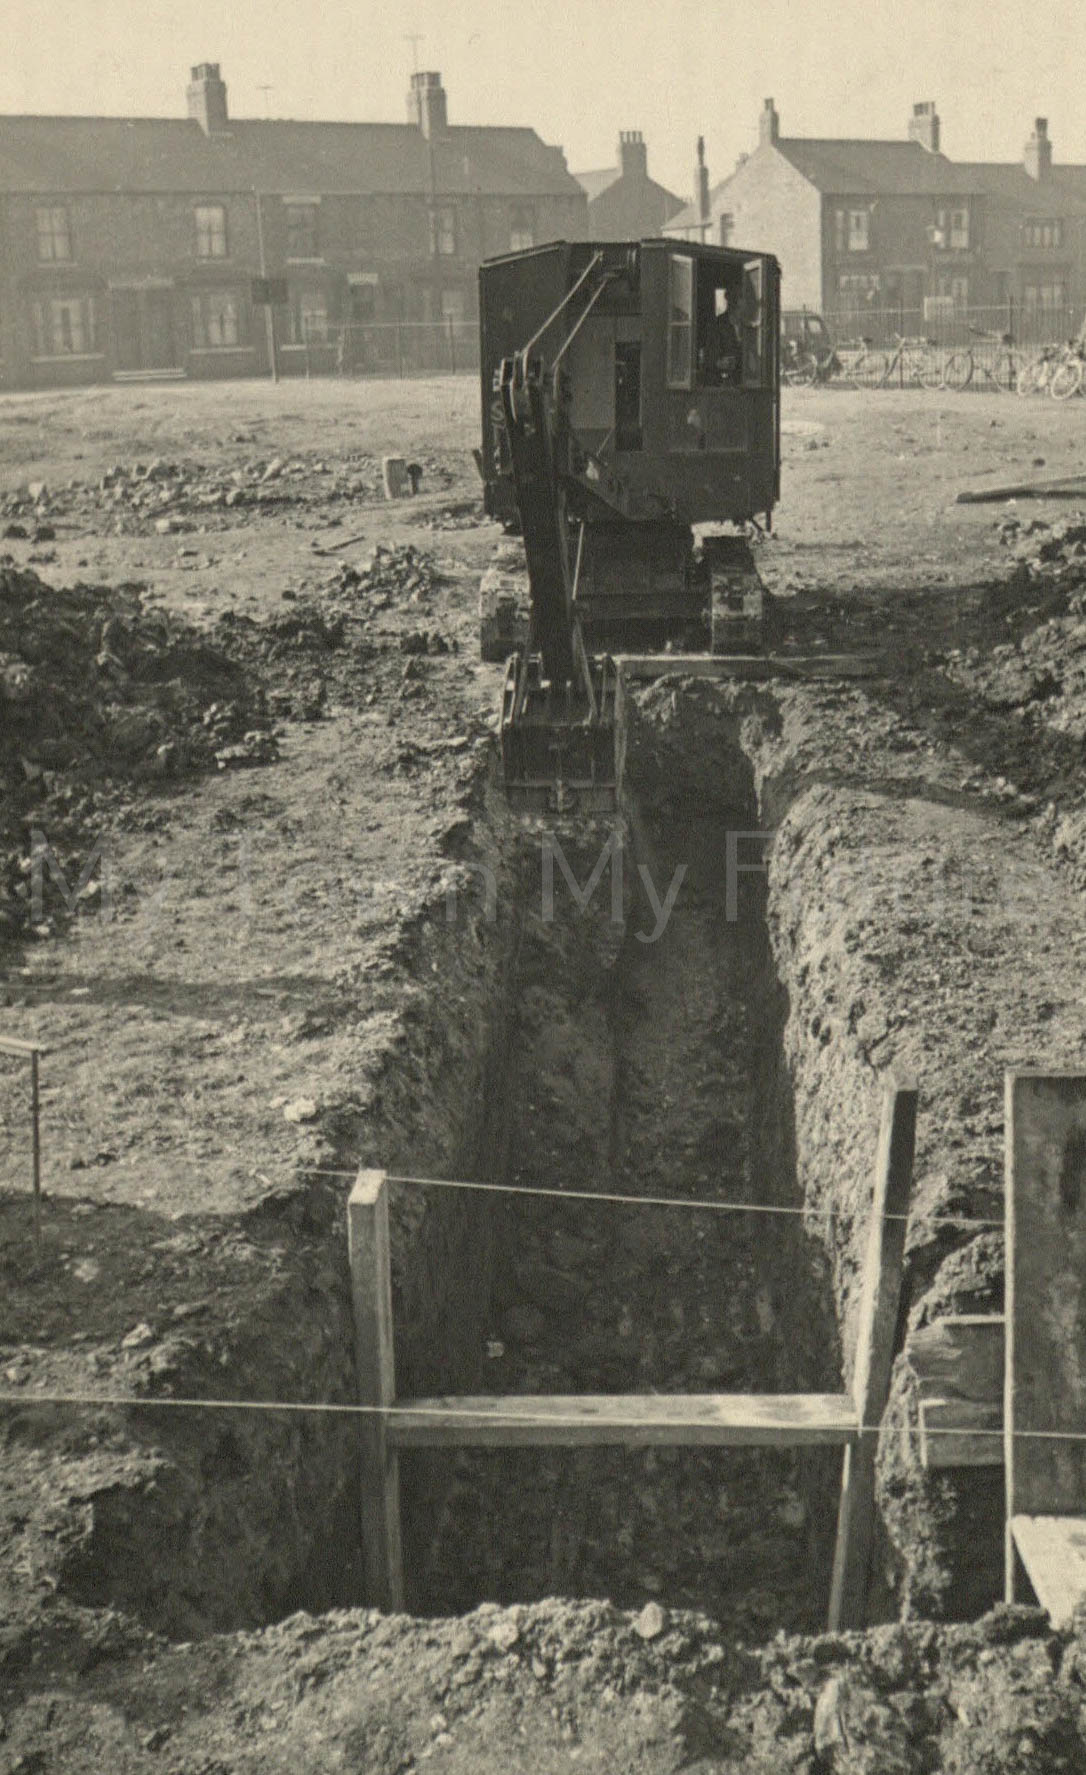 Excavating near the Tramways Depot